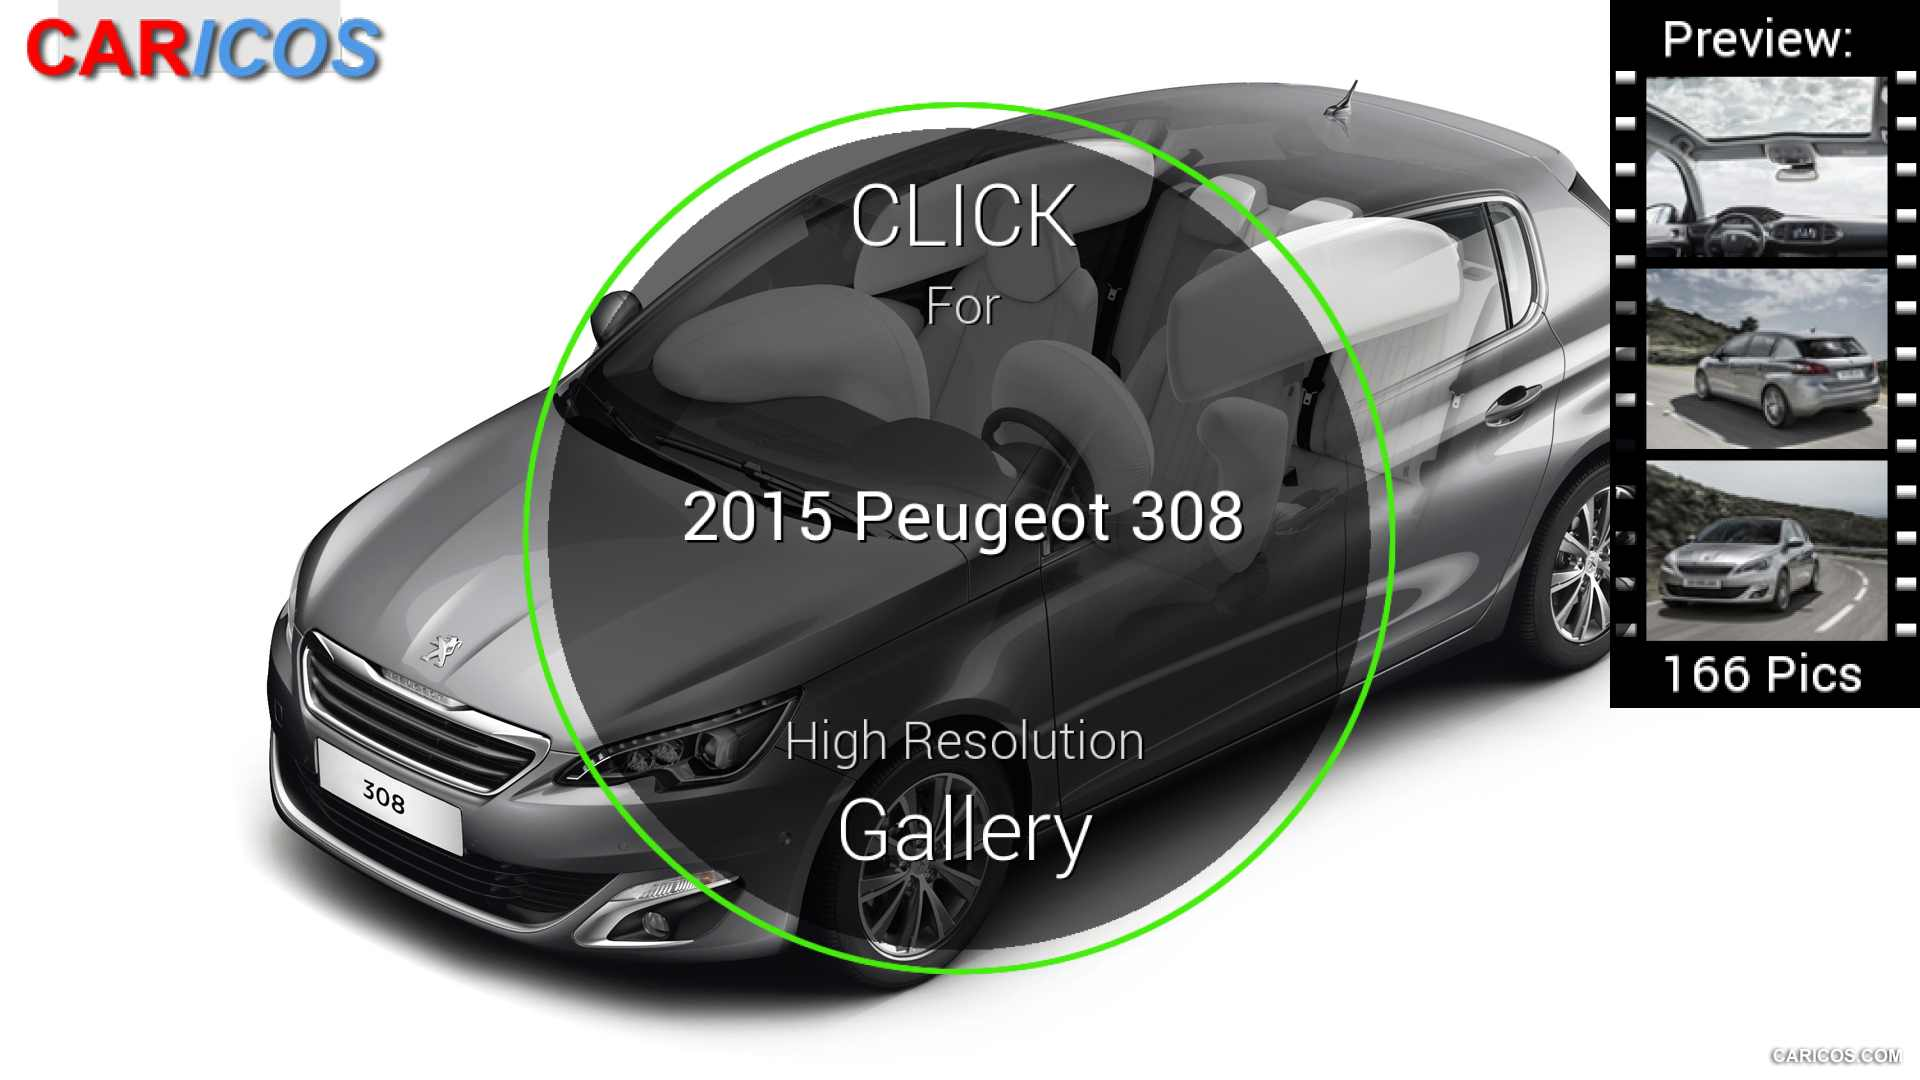 2015 Peugeot 308 Airbags / Safety | HD Wallpaper #158 | 1920x1080